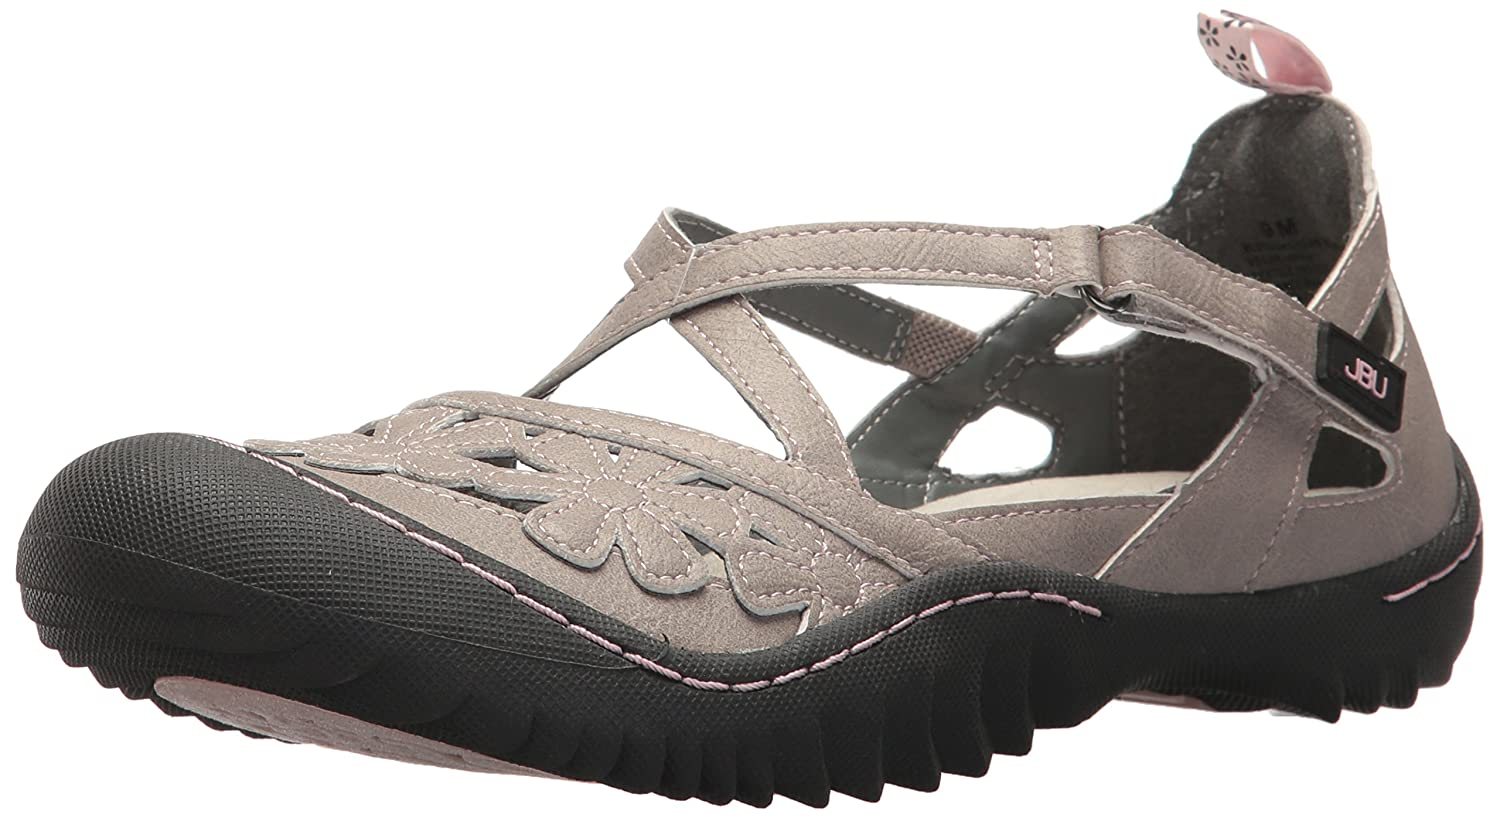 JBU by Jambu Women's Blossom Vegan Mary Jane Flat B074KQ12S8 6 B(M) US|Cement